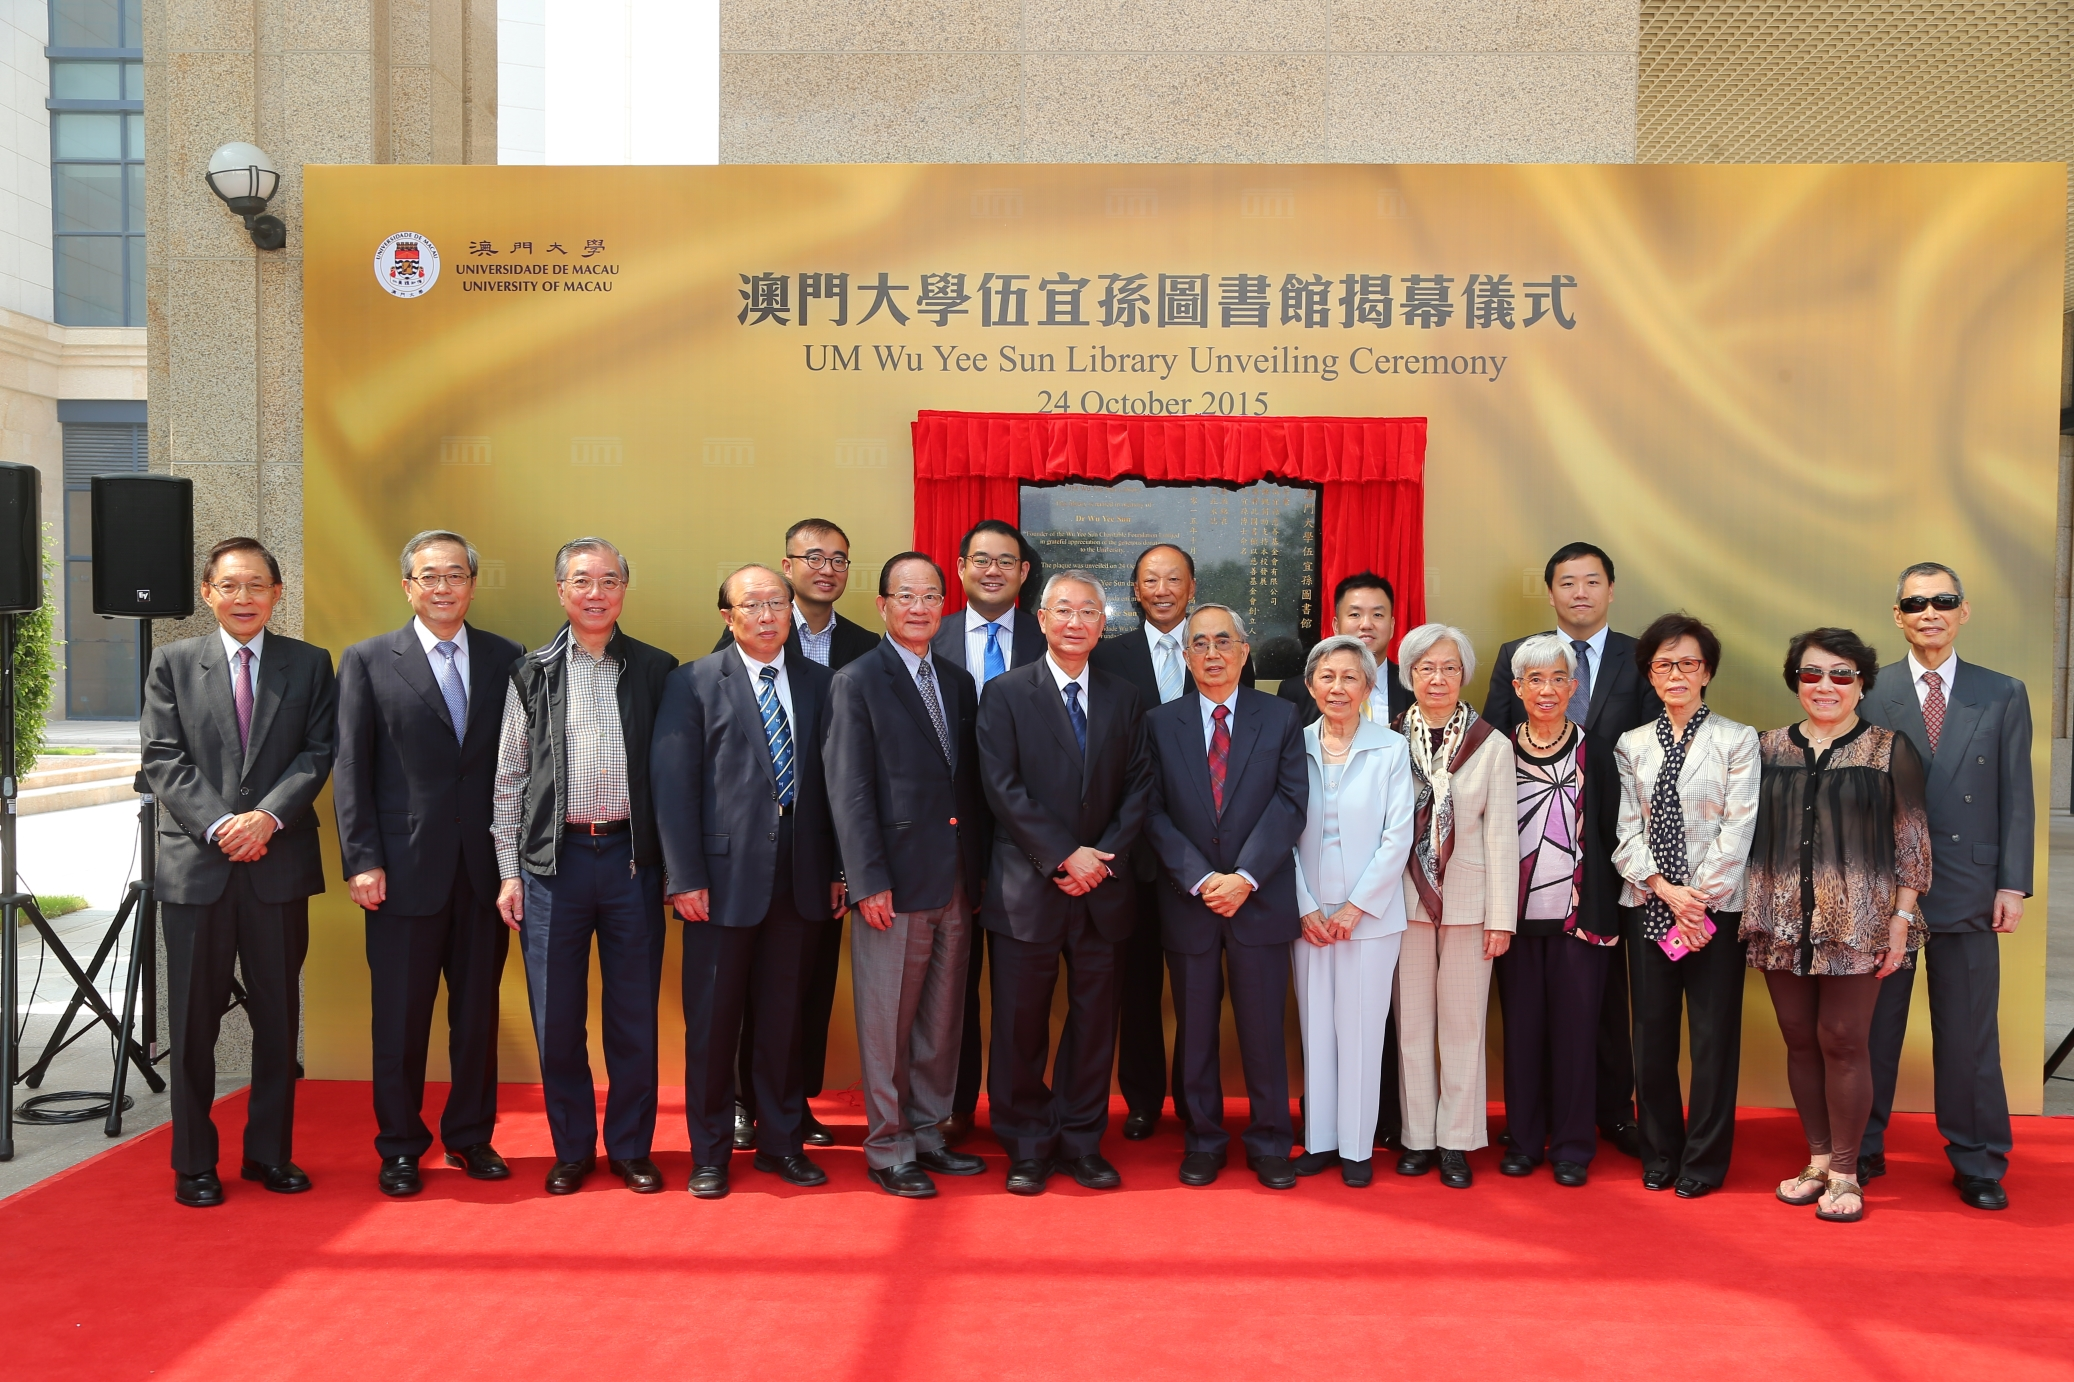 Members of the Wu family attend the plaque unveiling ceremony